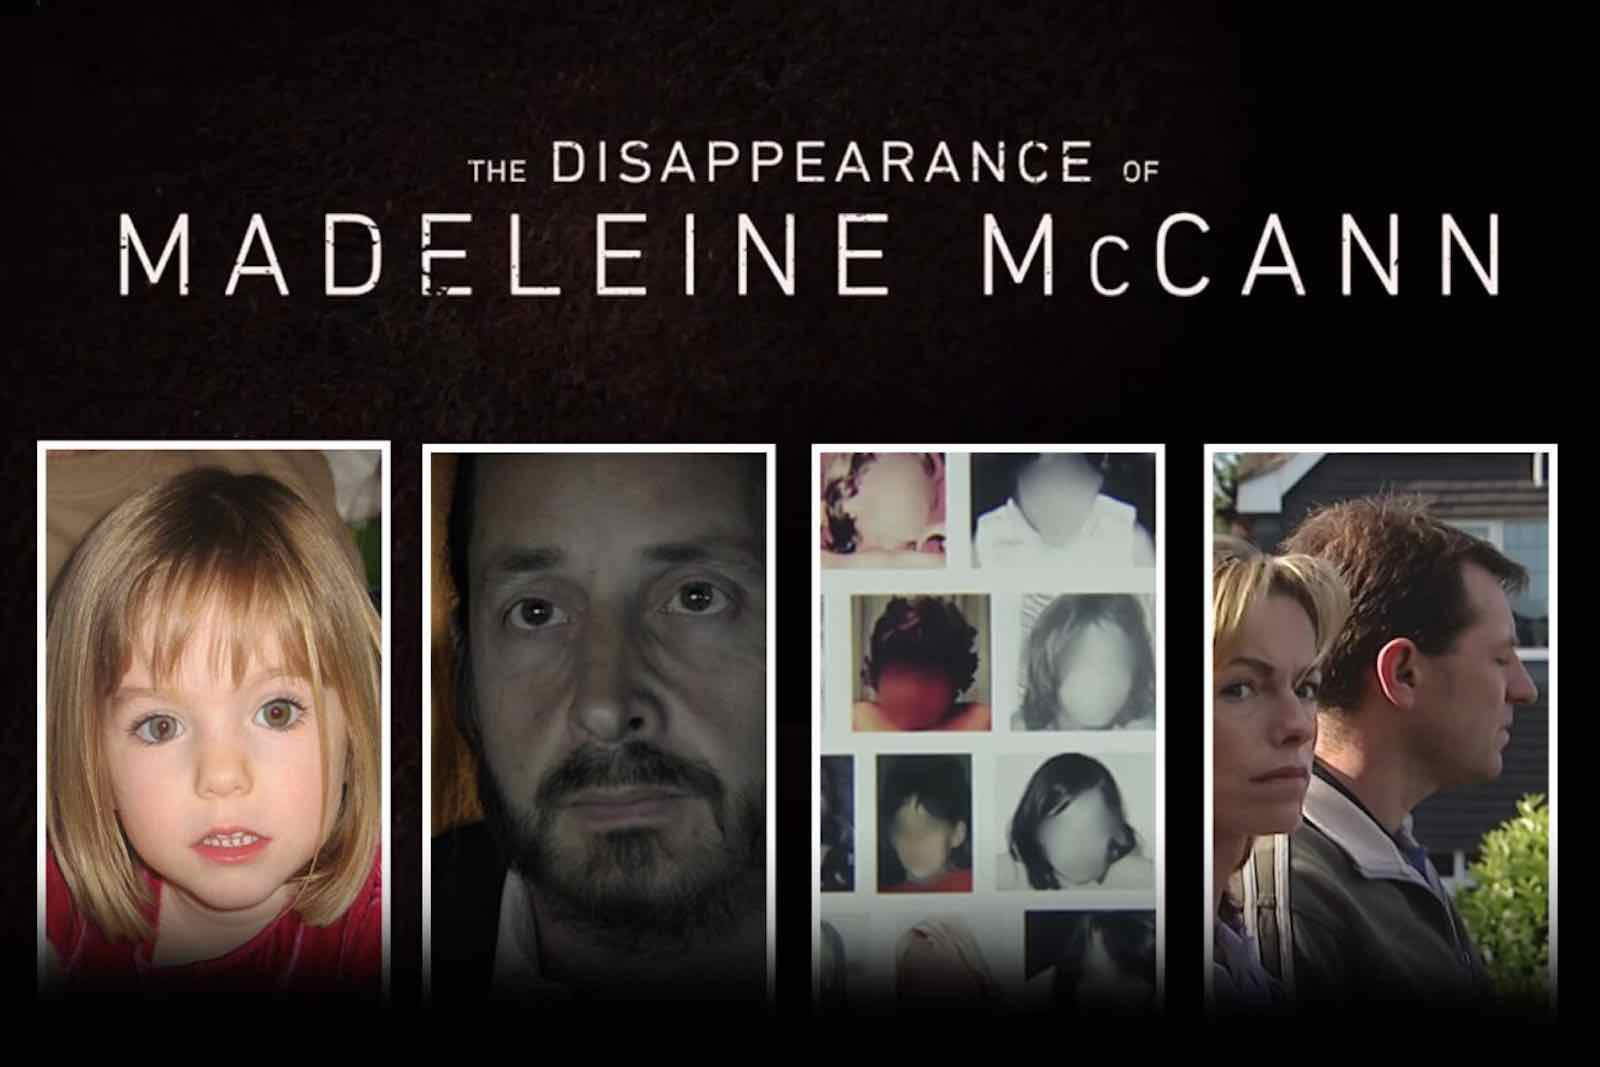 Netflix probes Madeleine McCann disappearance in new documentary - Page 15 The-Disappearance-of-Madeleine-McCann-7